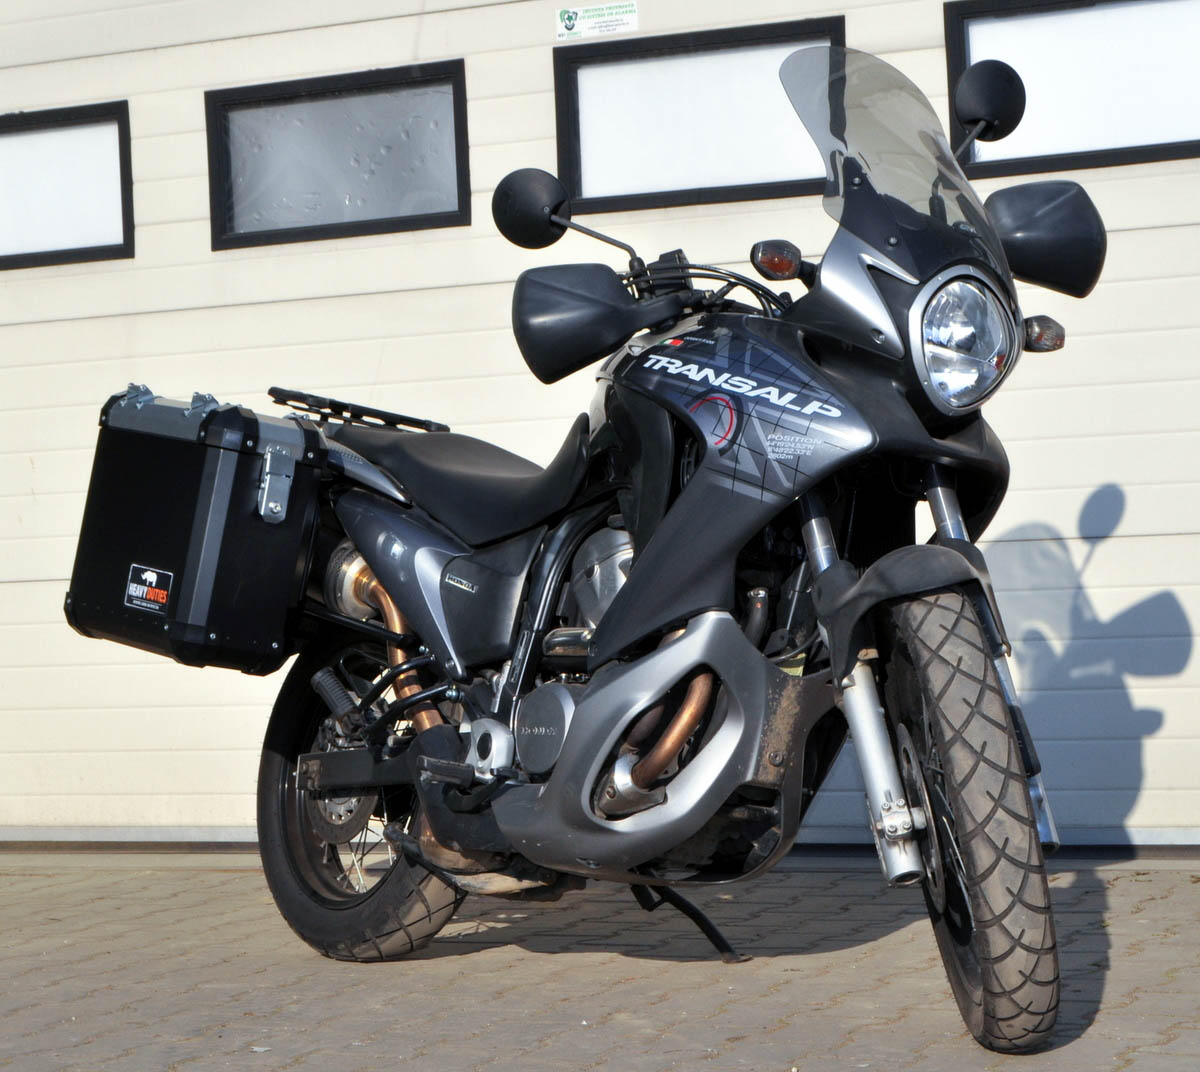 honda transalp 700 panniers heavy duties. Black Bedroom Furniture Sets. Home Design Ideas